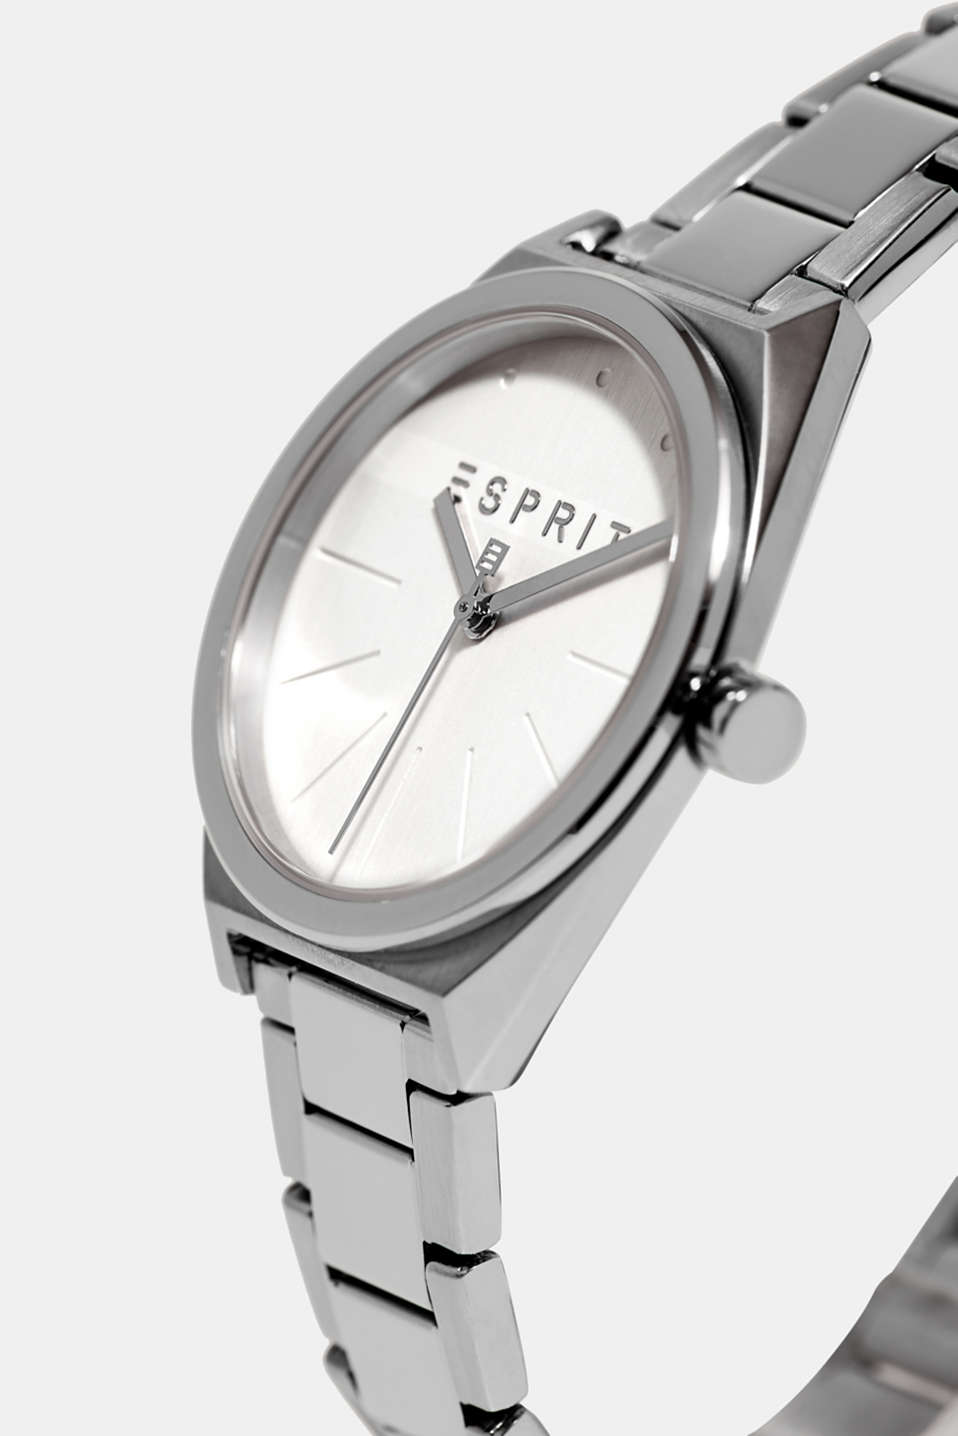 Stainless-steel watch with a link bracelet